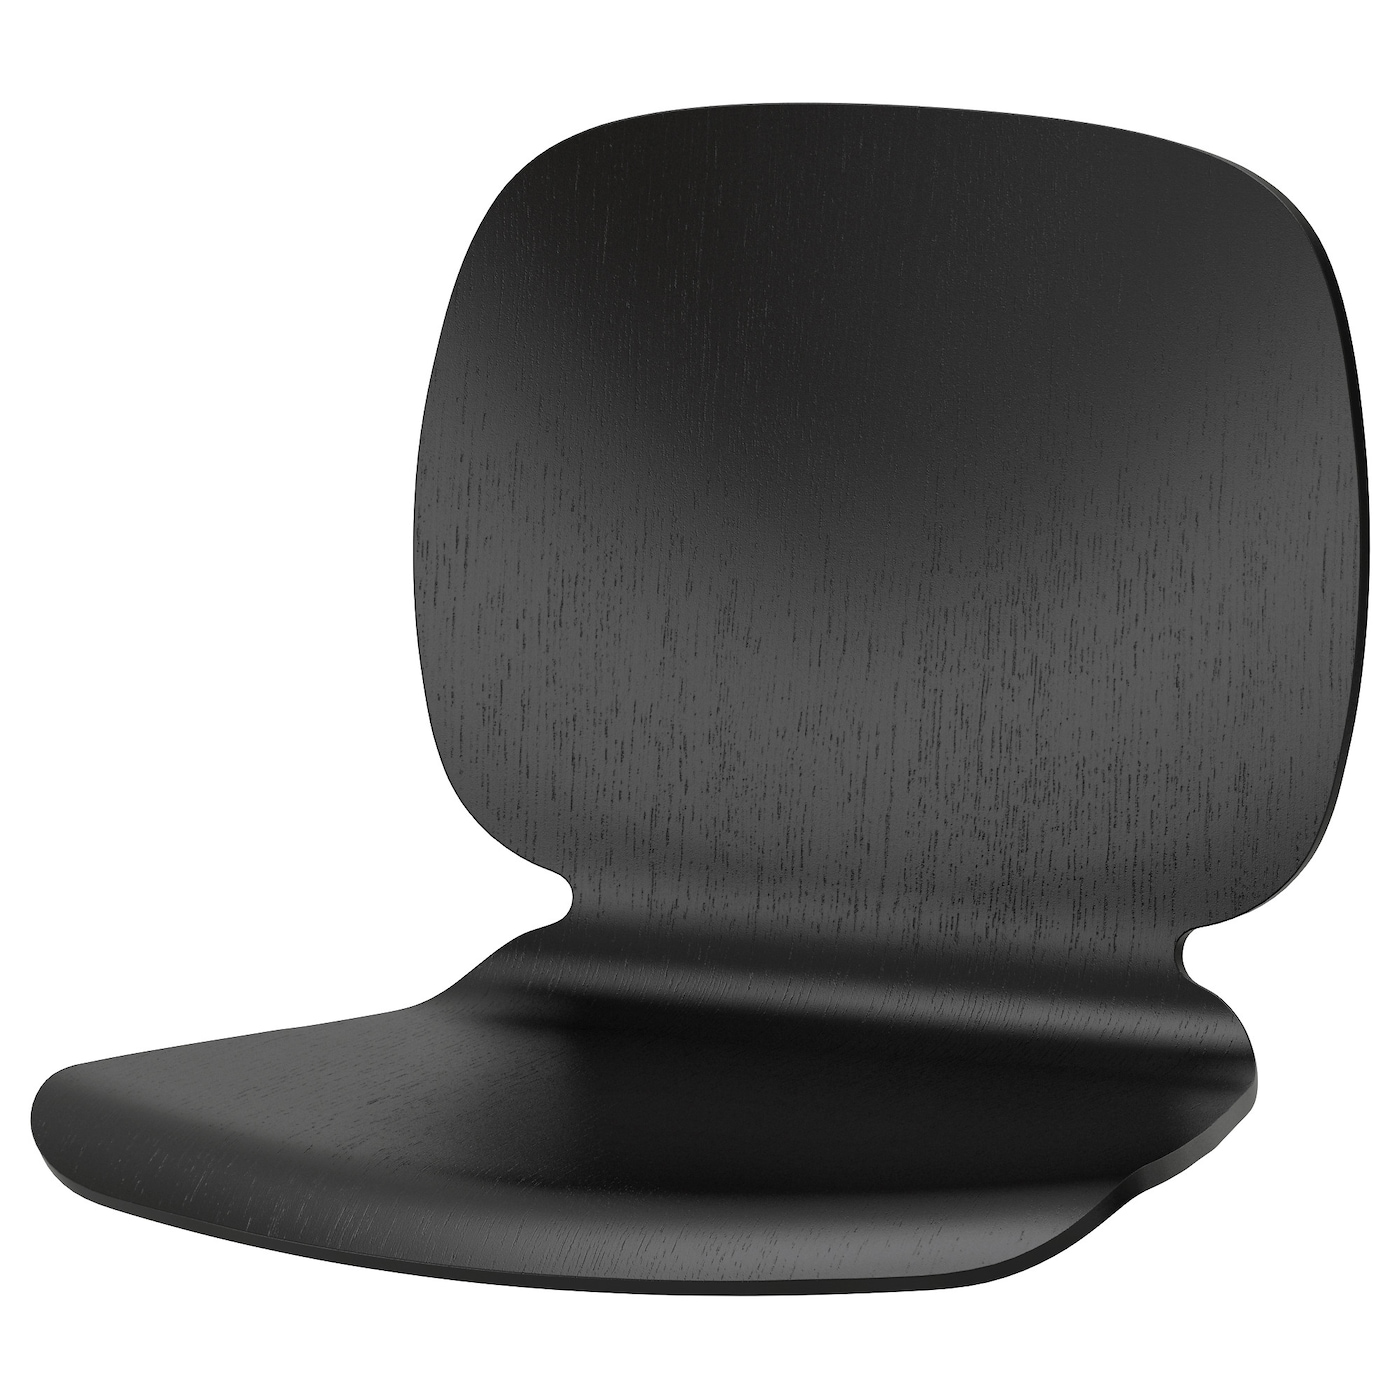 IKEA SVENBERTIL seat shell A special surface treatment on the seat prevents you from sliding.